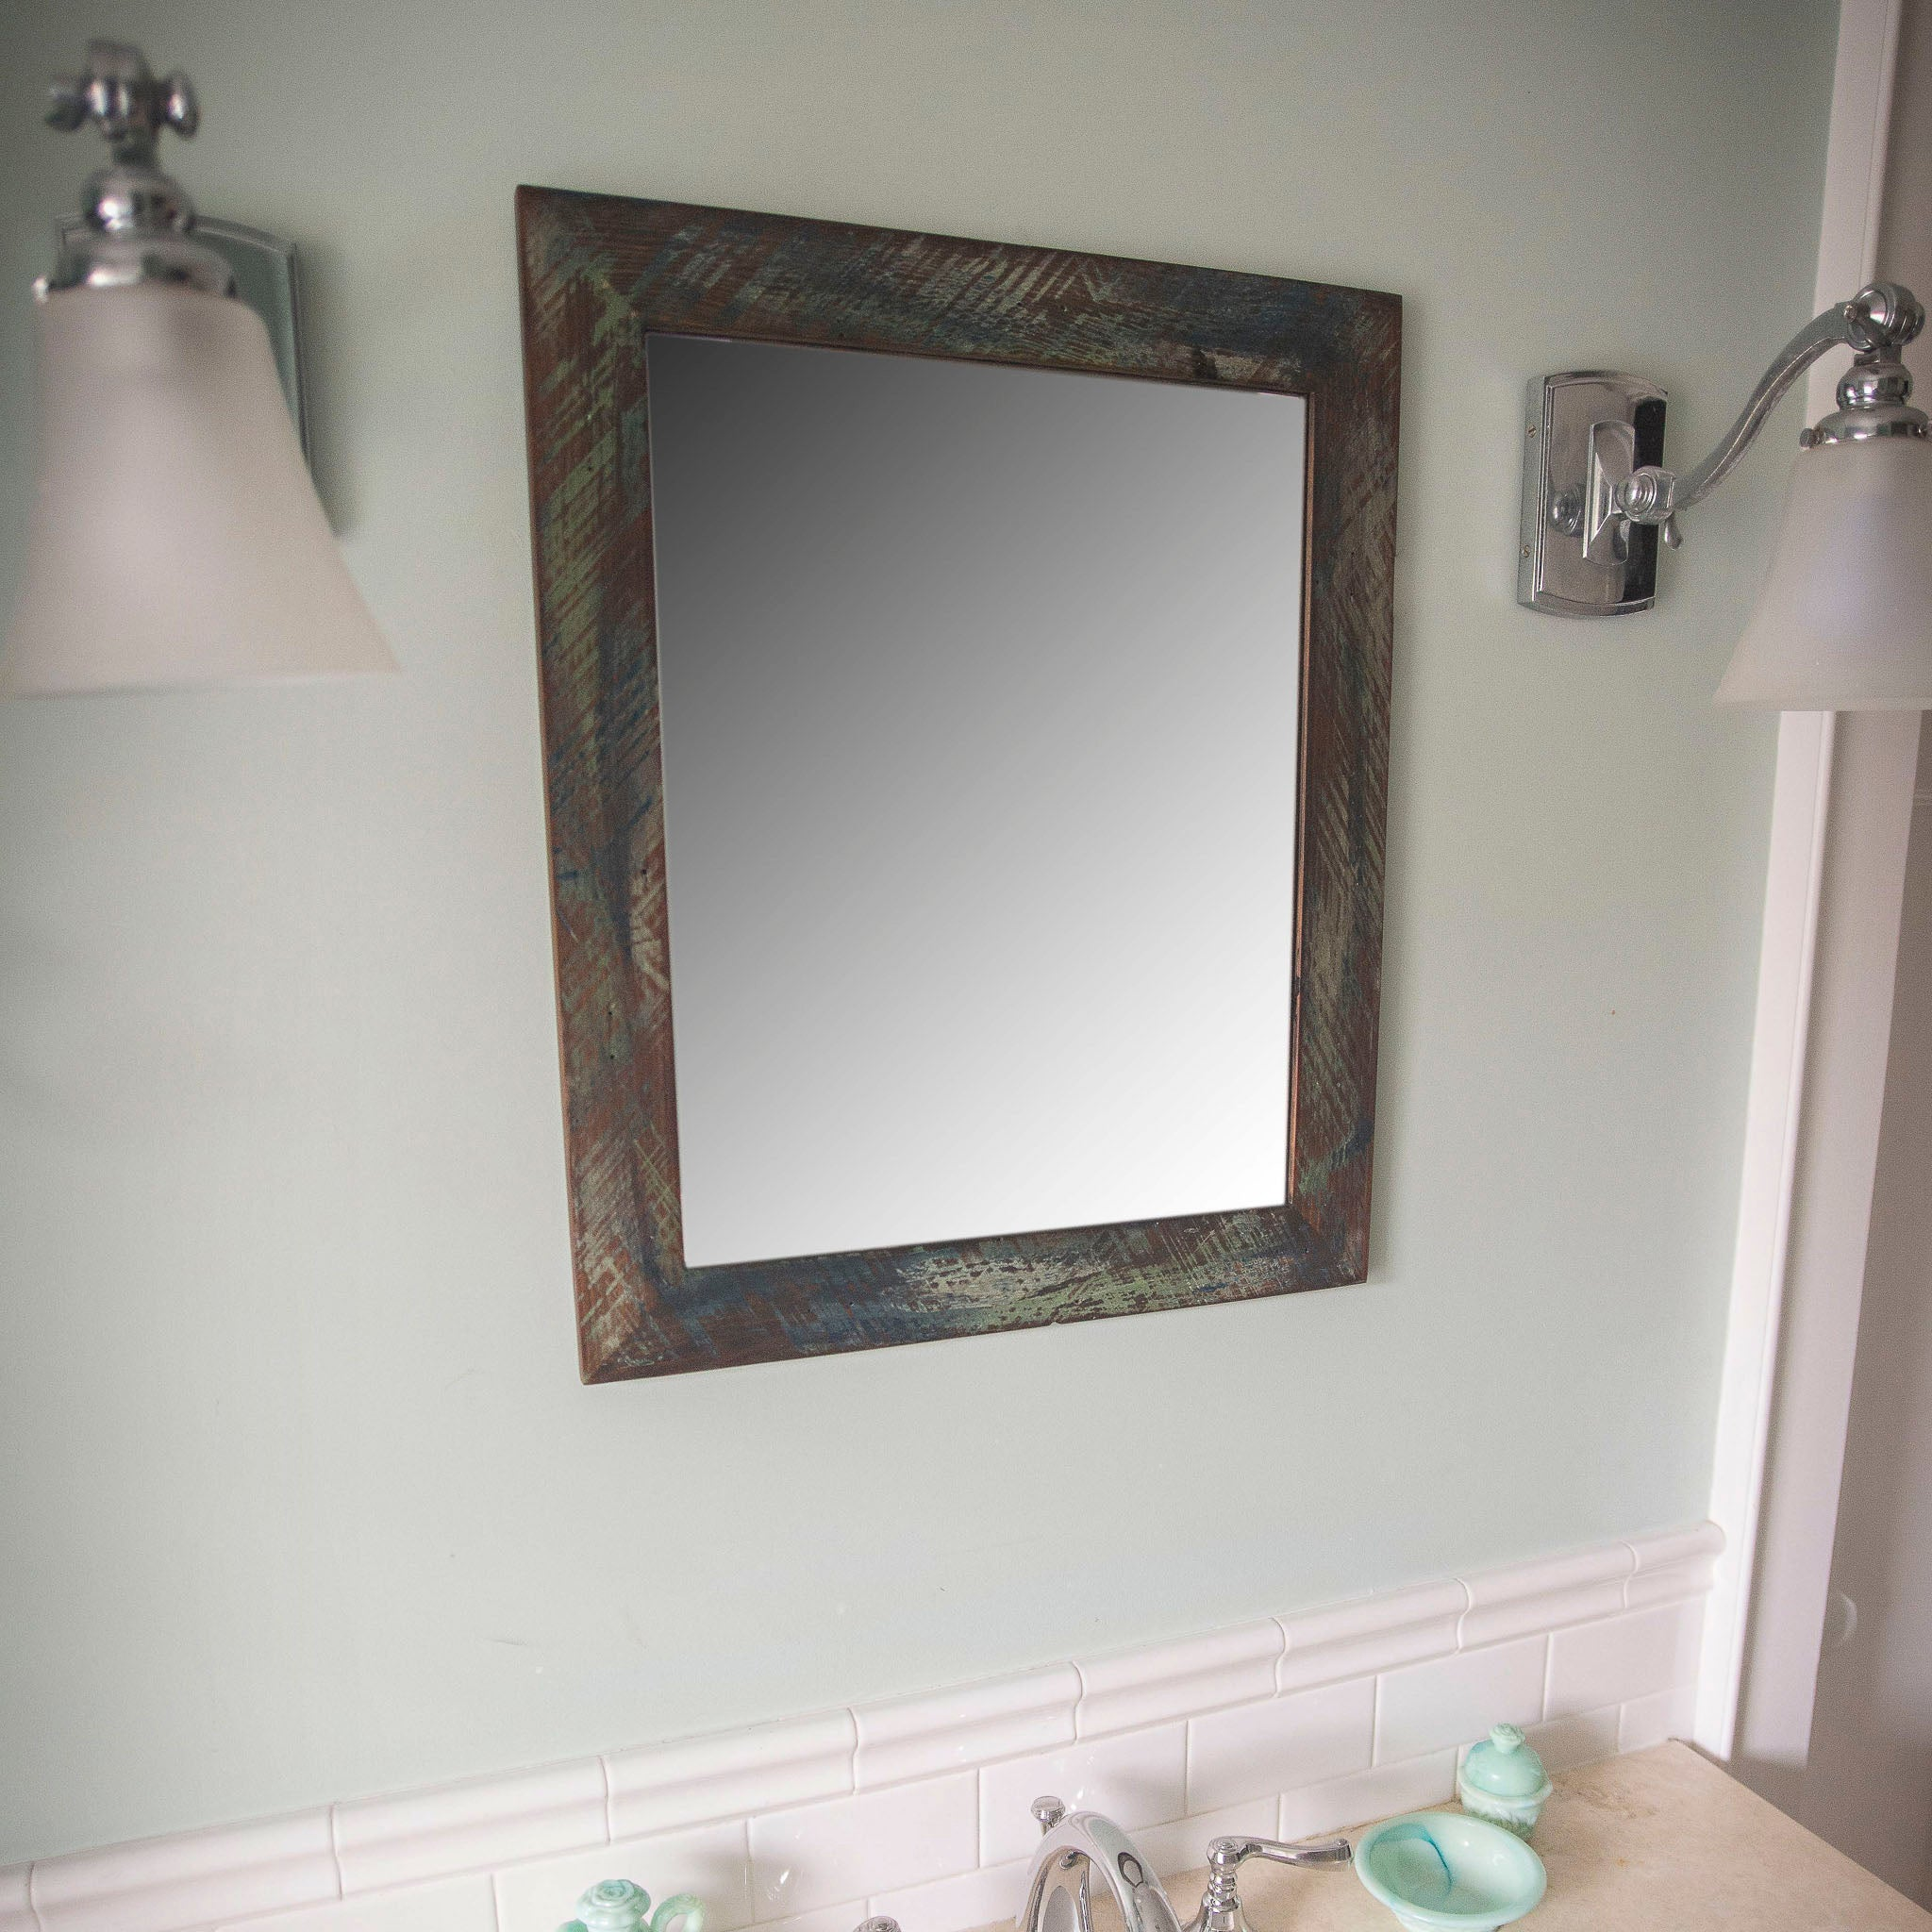 Handcrafted Vanity Mirror -- Entry Mirror, Bathroom Mirror -- Reclaimed wood from Detroit, Mutual Adoration, Handcrafted Home Goods and Gifts